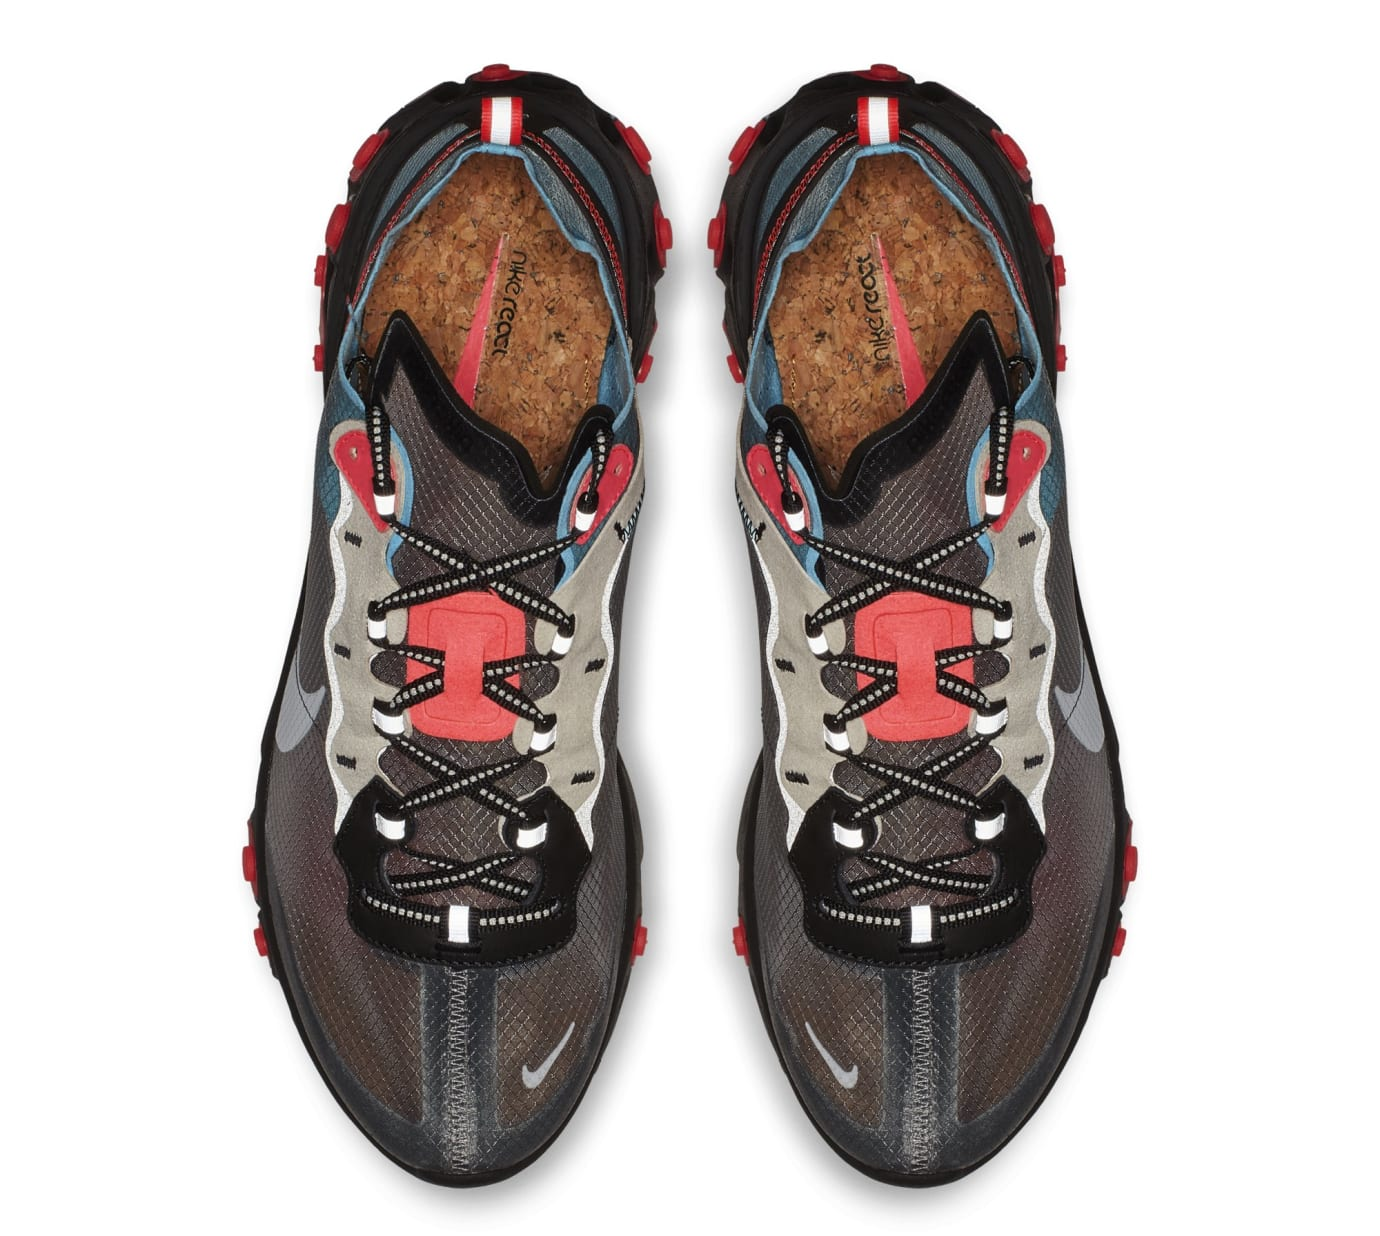 Nike React Element 87 'Black/Cool Grey/Blue Chill/Solar Red' AQ1090-006 (Top)